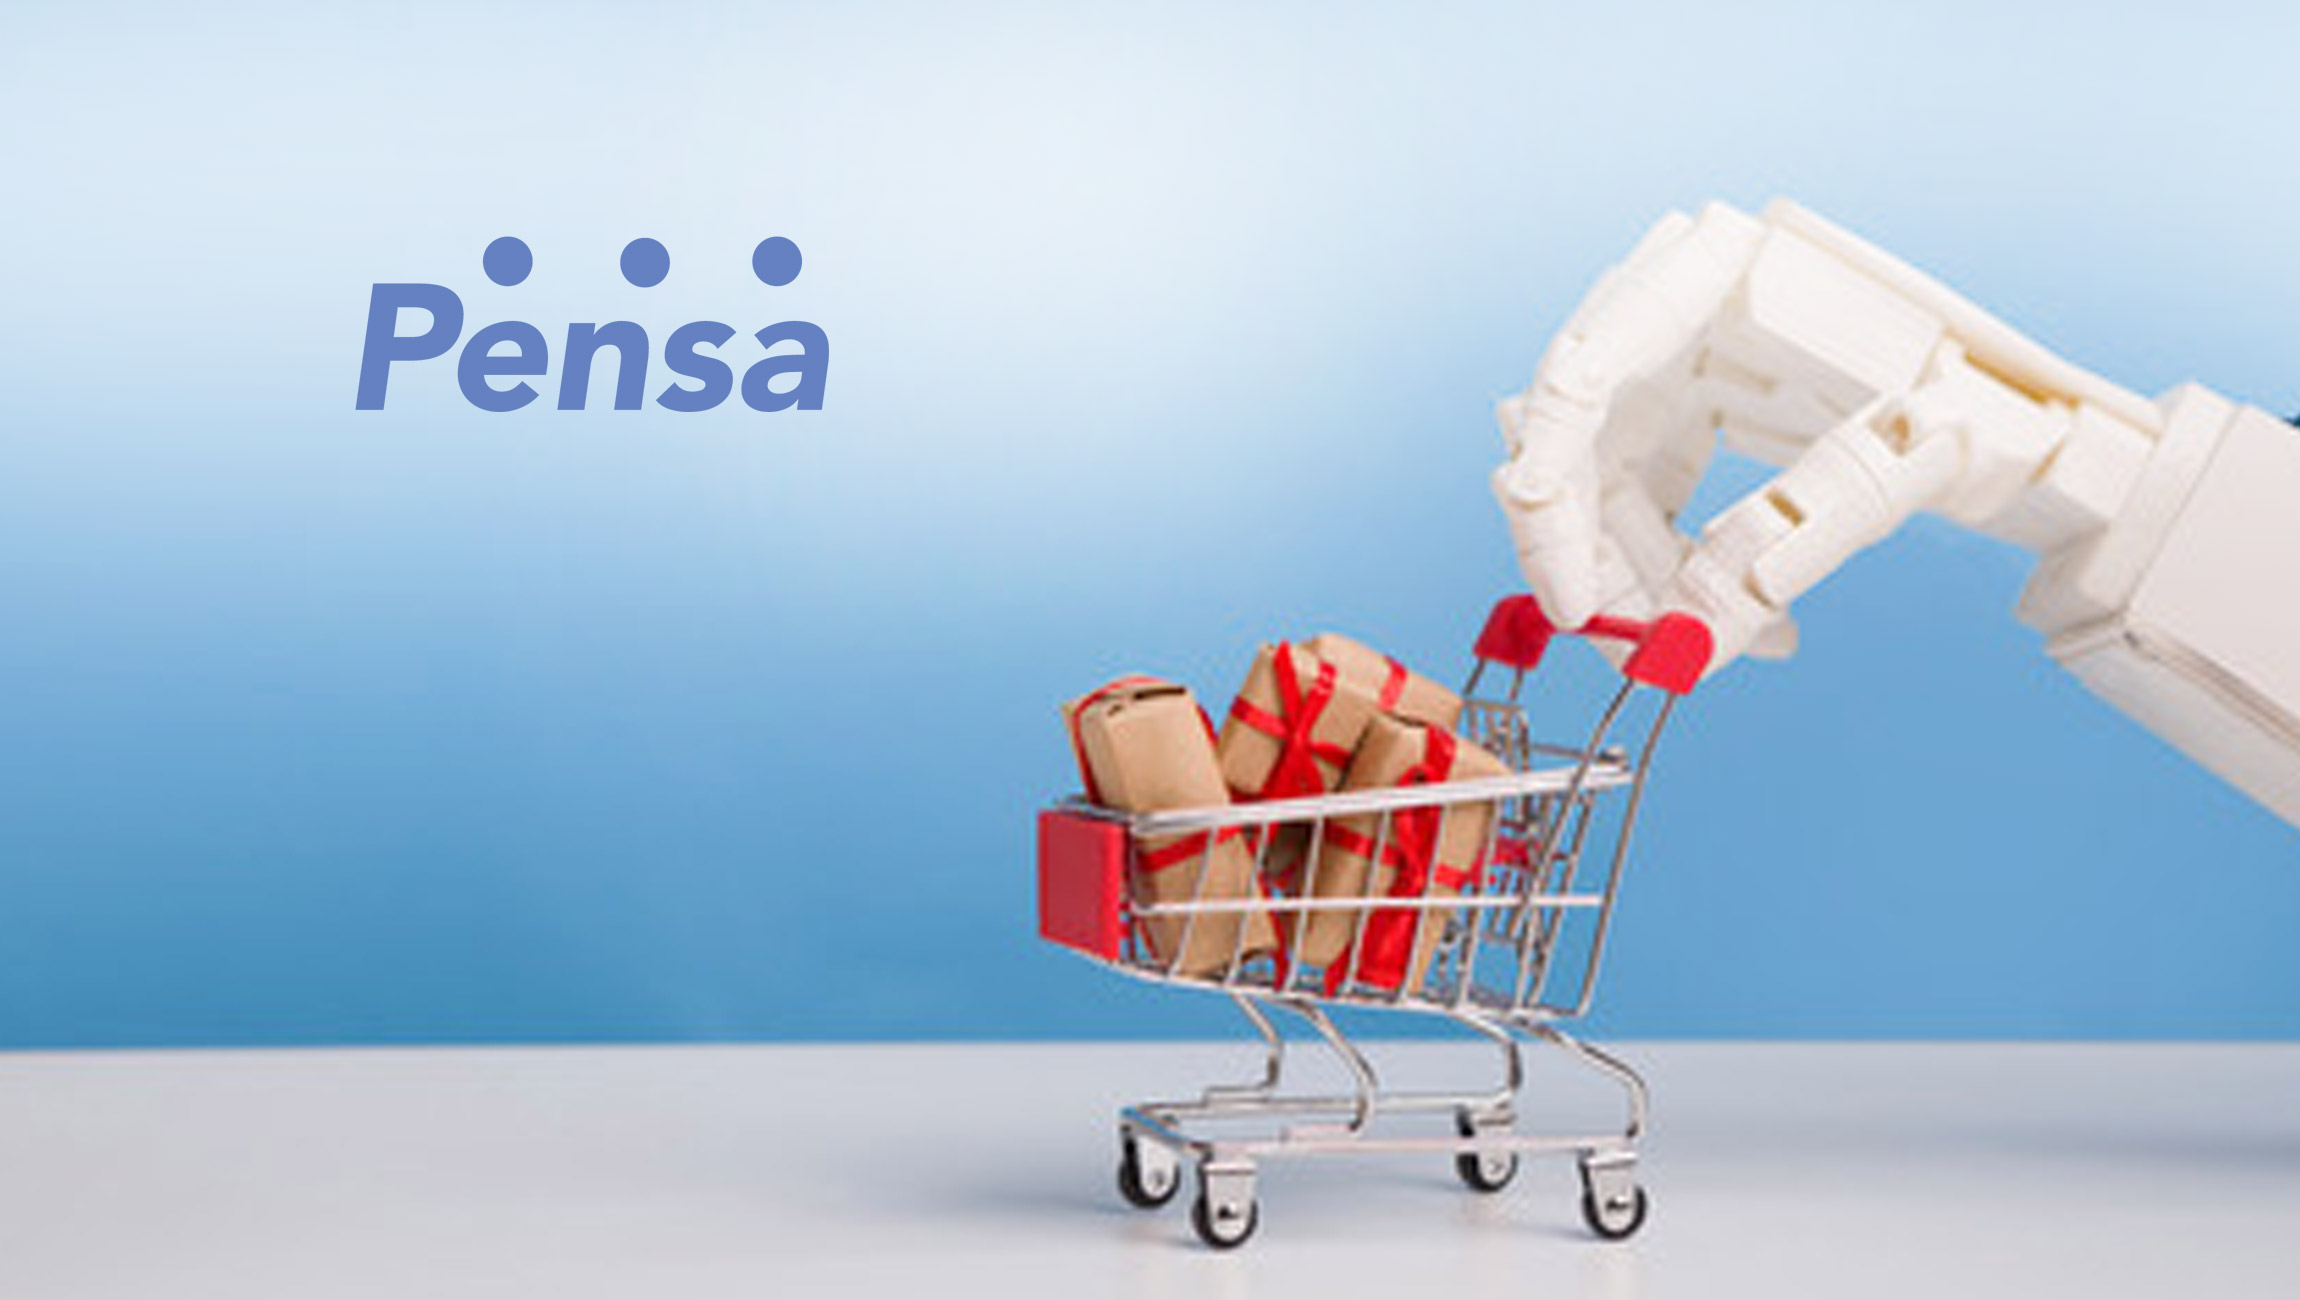 Pensa's Adoption by Johnson & Johnson, General Mills and Circle K Points to Expanded Demand for Advanced Retail Shelf Intelligence